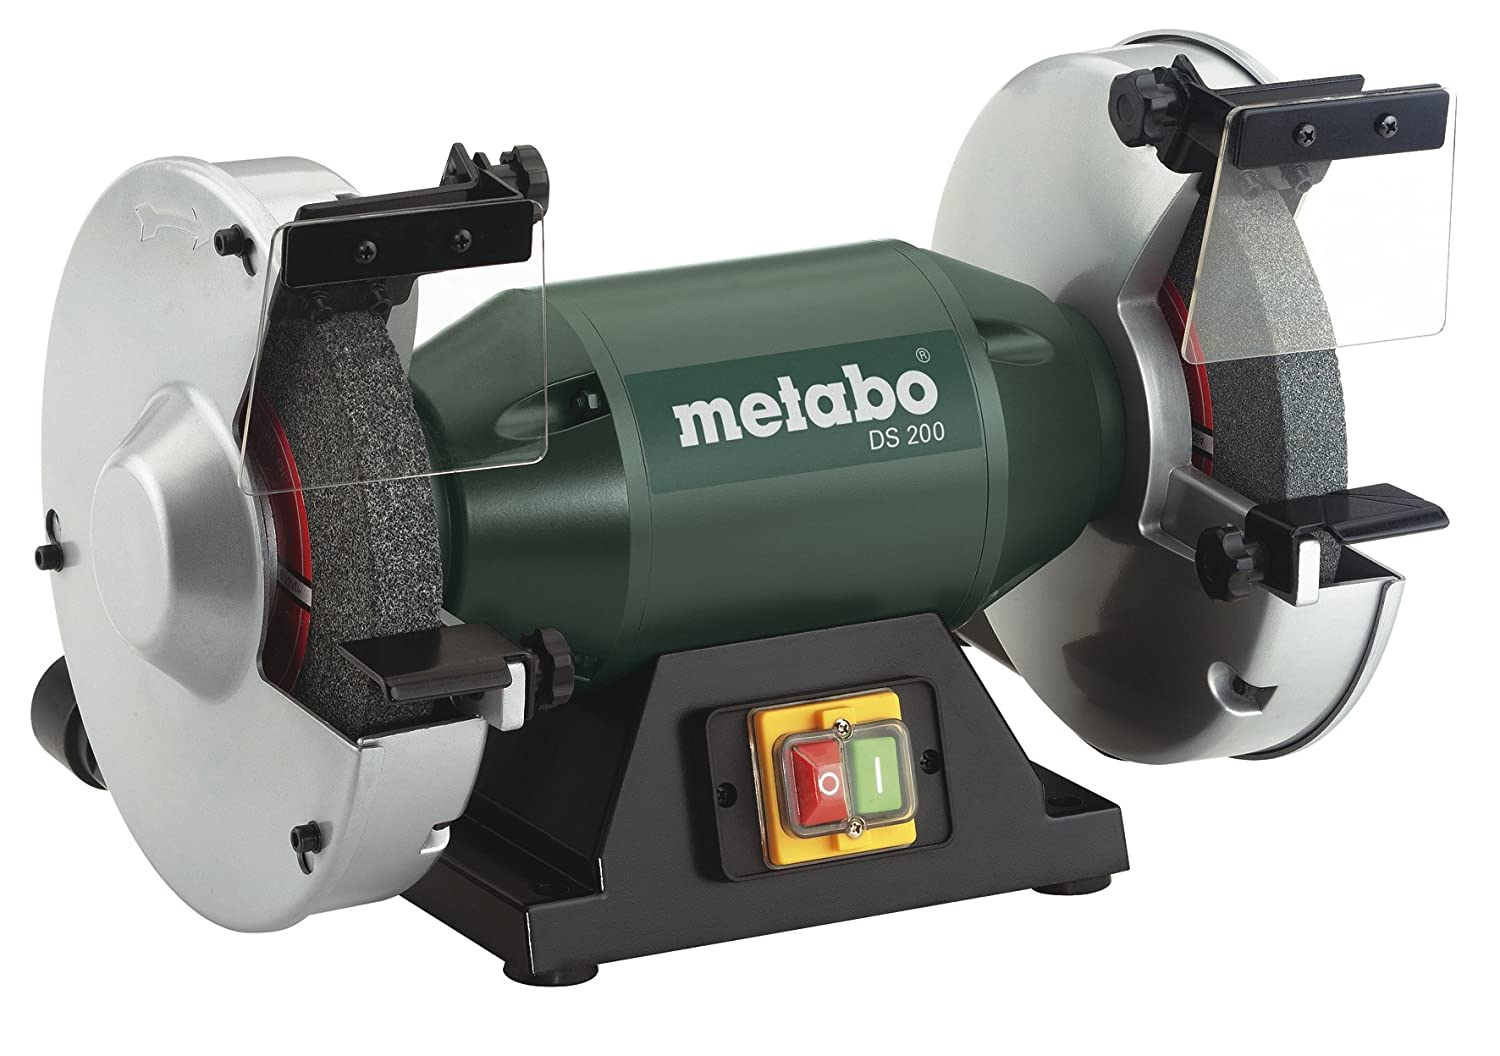 Metabo DS 200 8-Inch Bench Grinder - Power Bench Grinders - Amazon.com